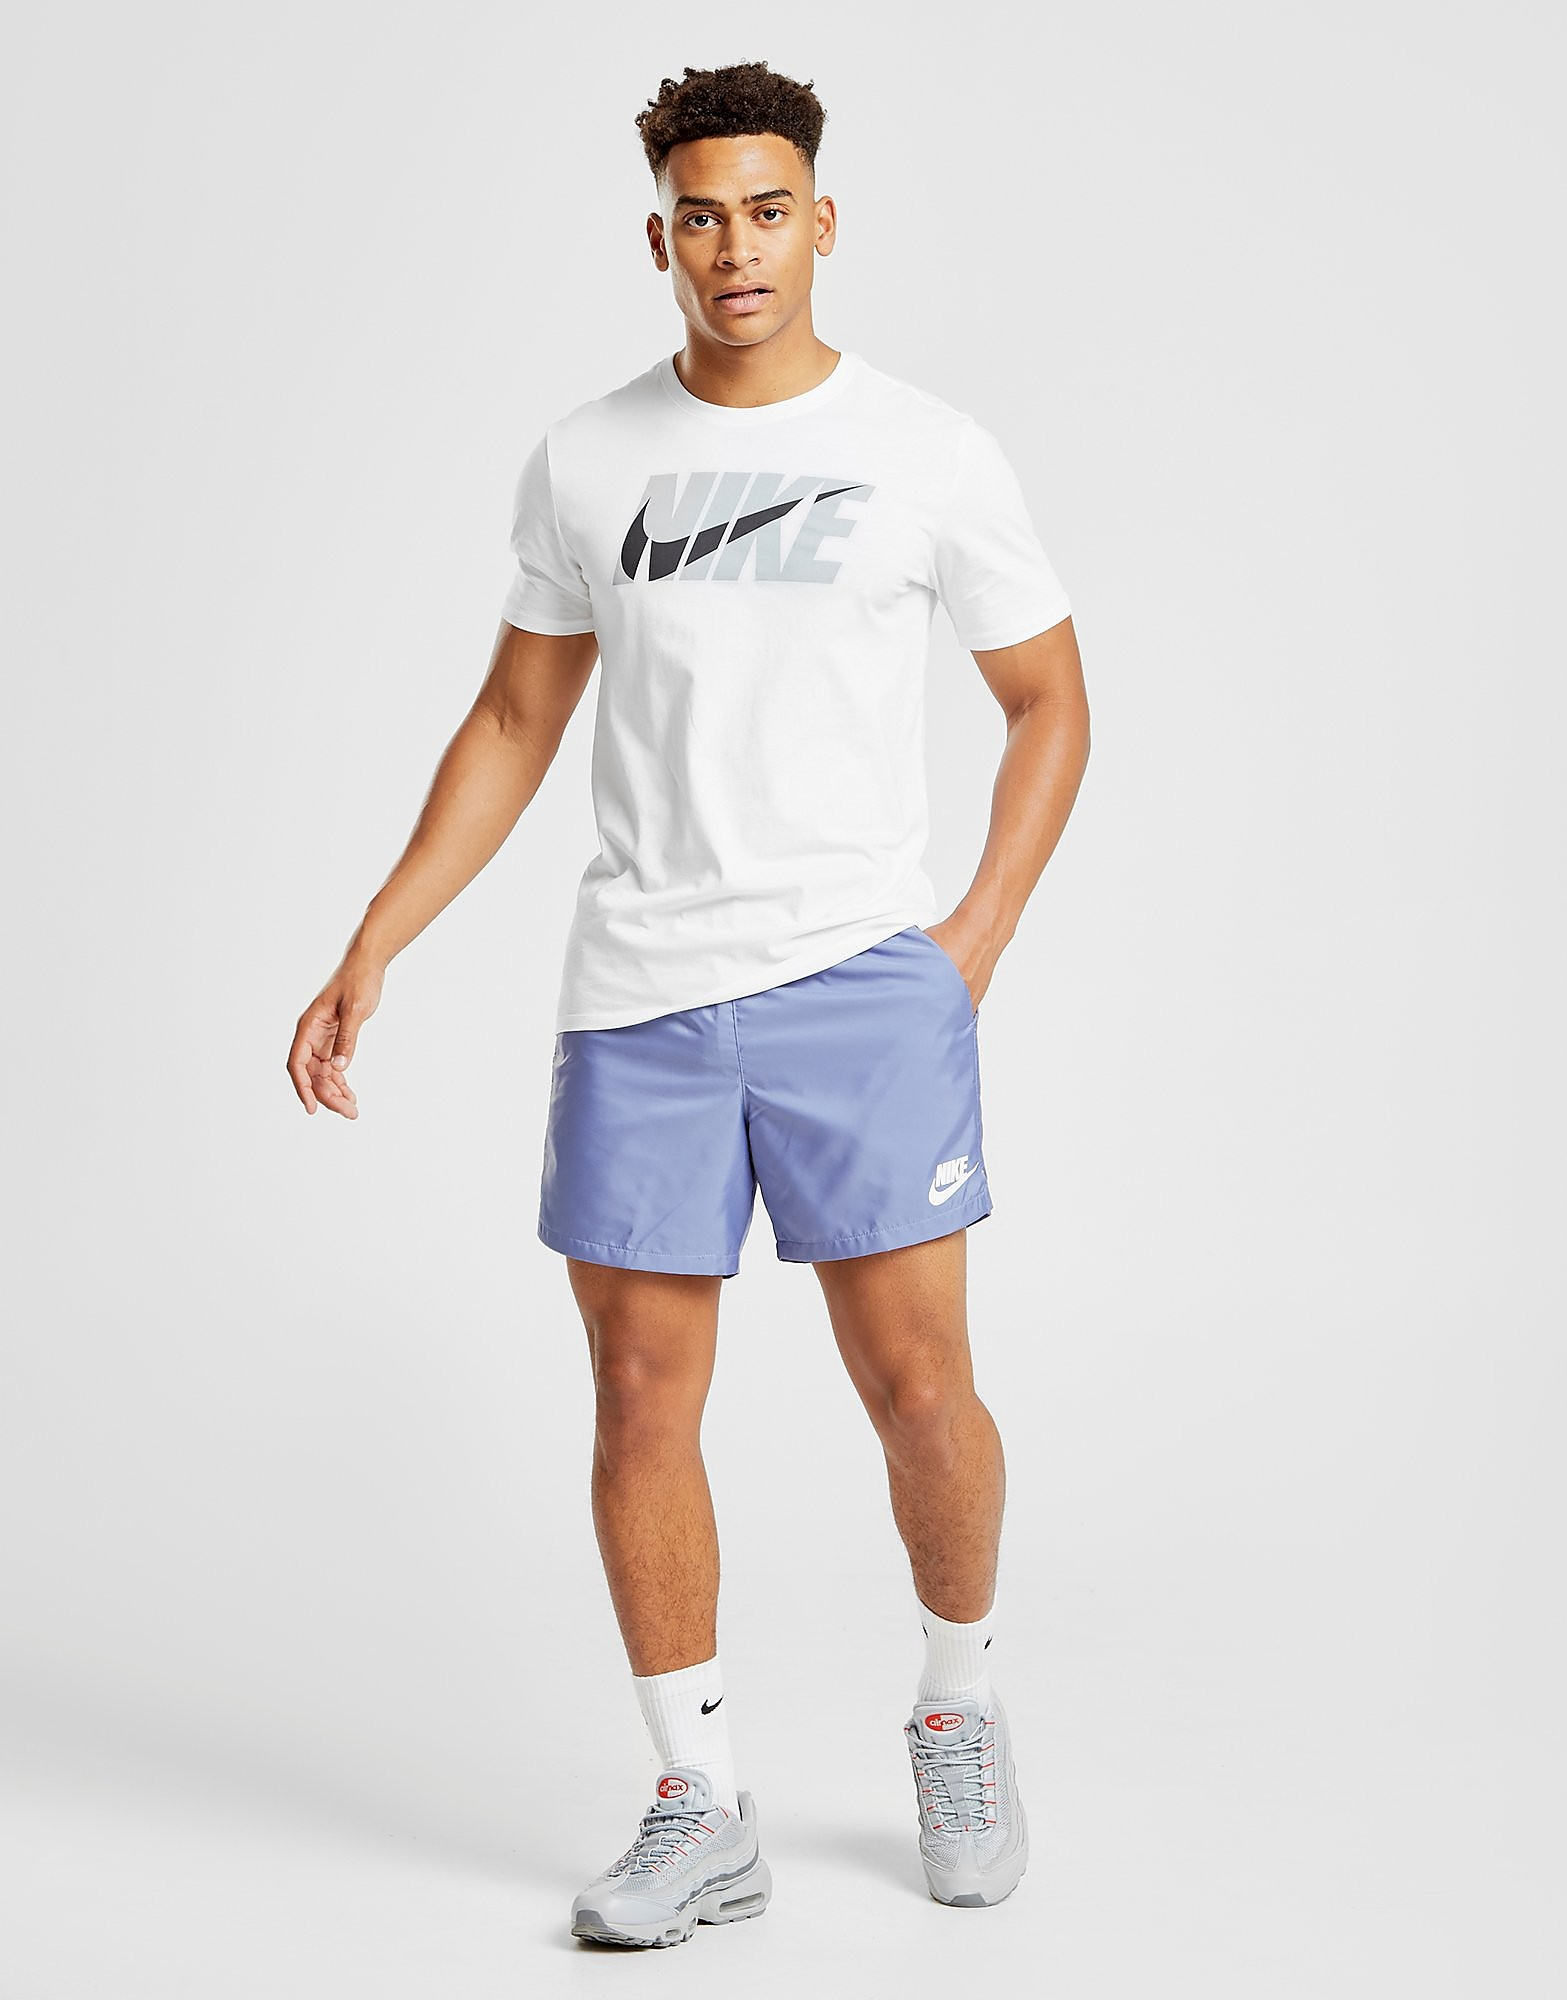 Nike Flow Swim Shorts